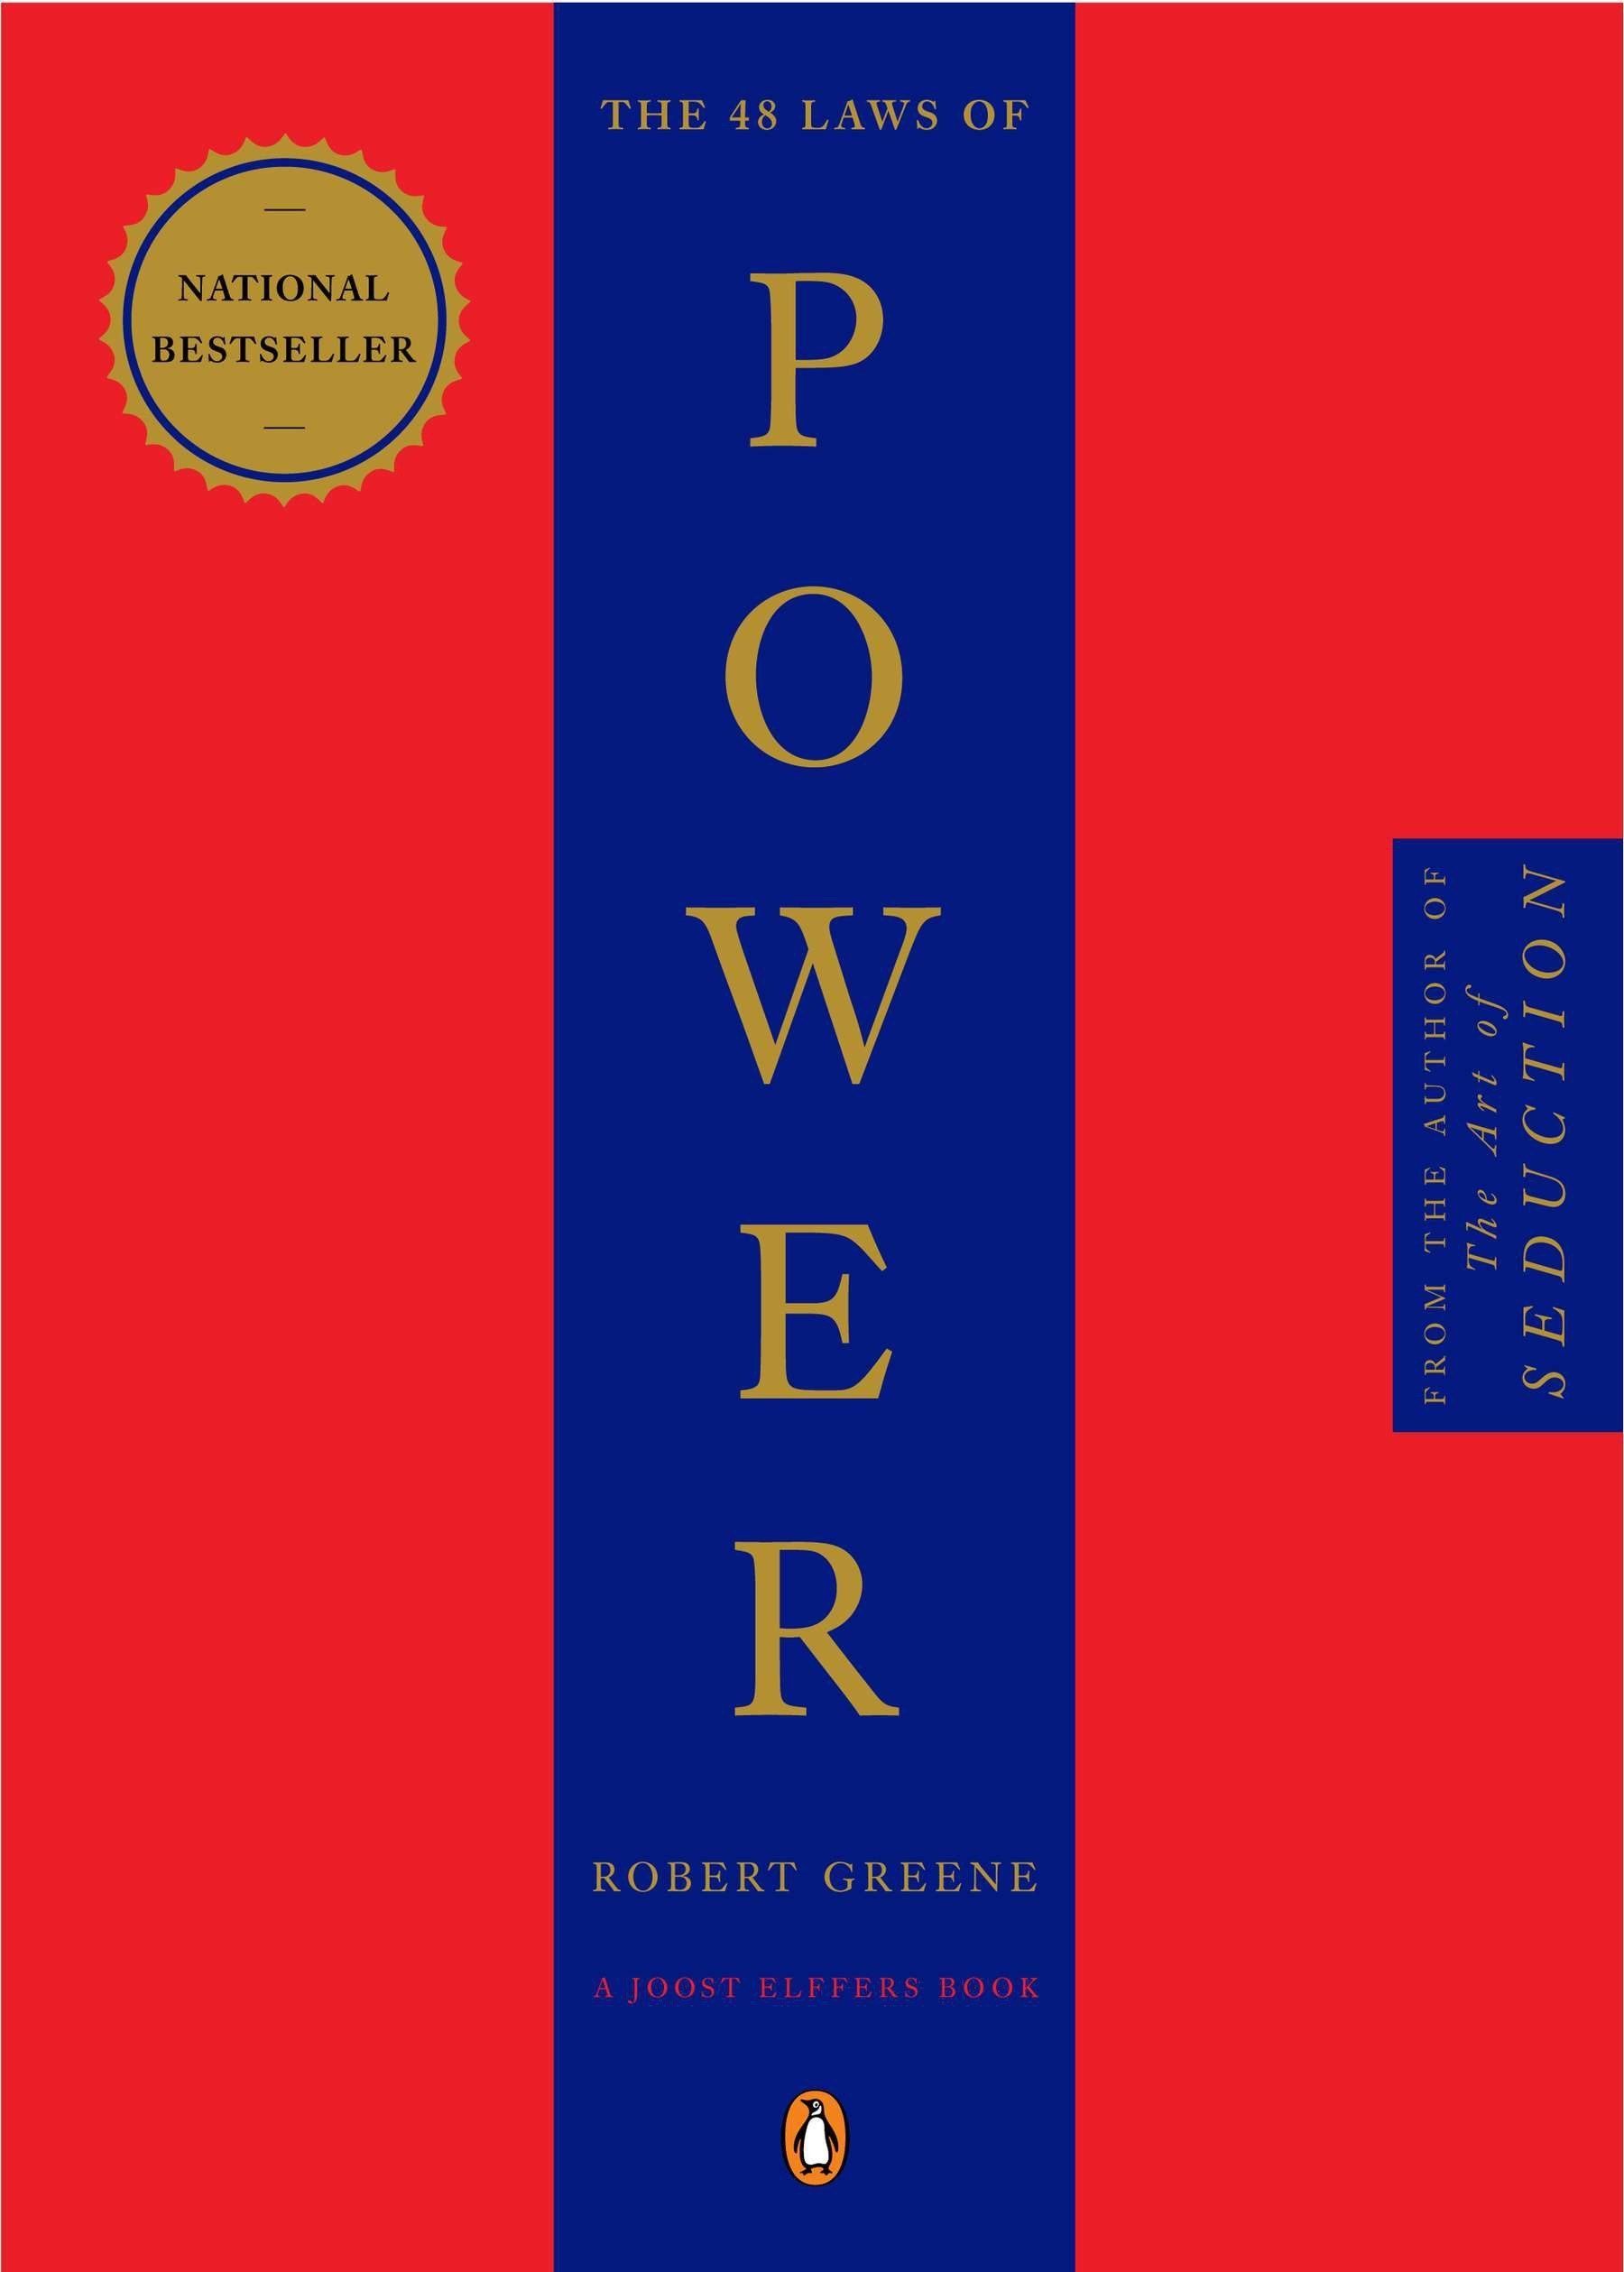 Robert Greene Best full download books: #Health #Fitness #Dieting #novel #booksnovel #booksdrama #bo...